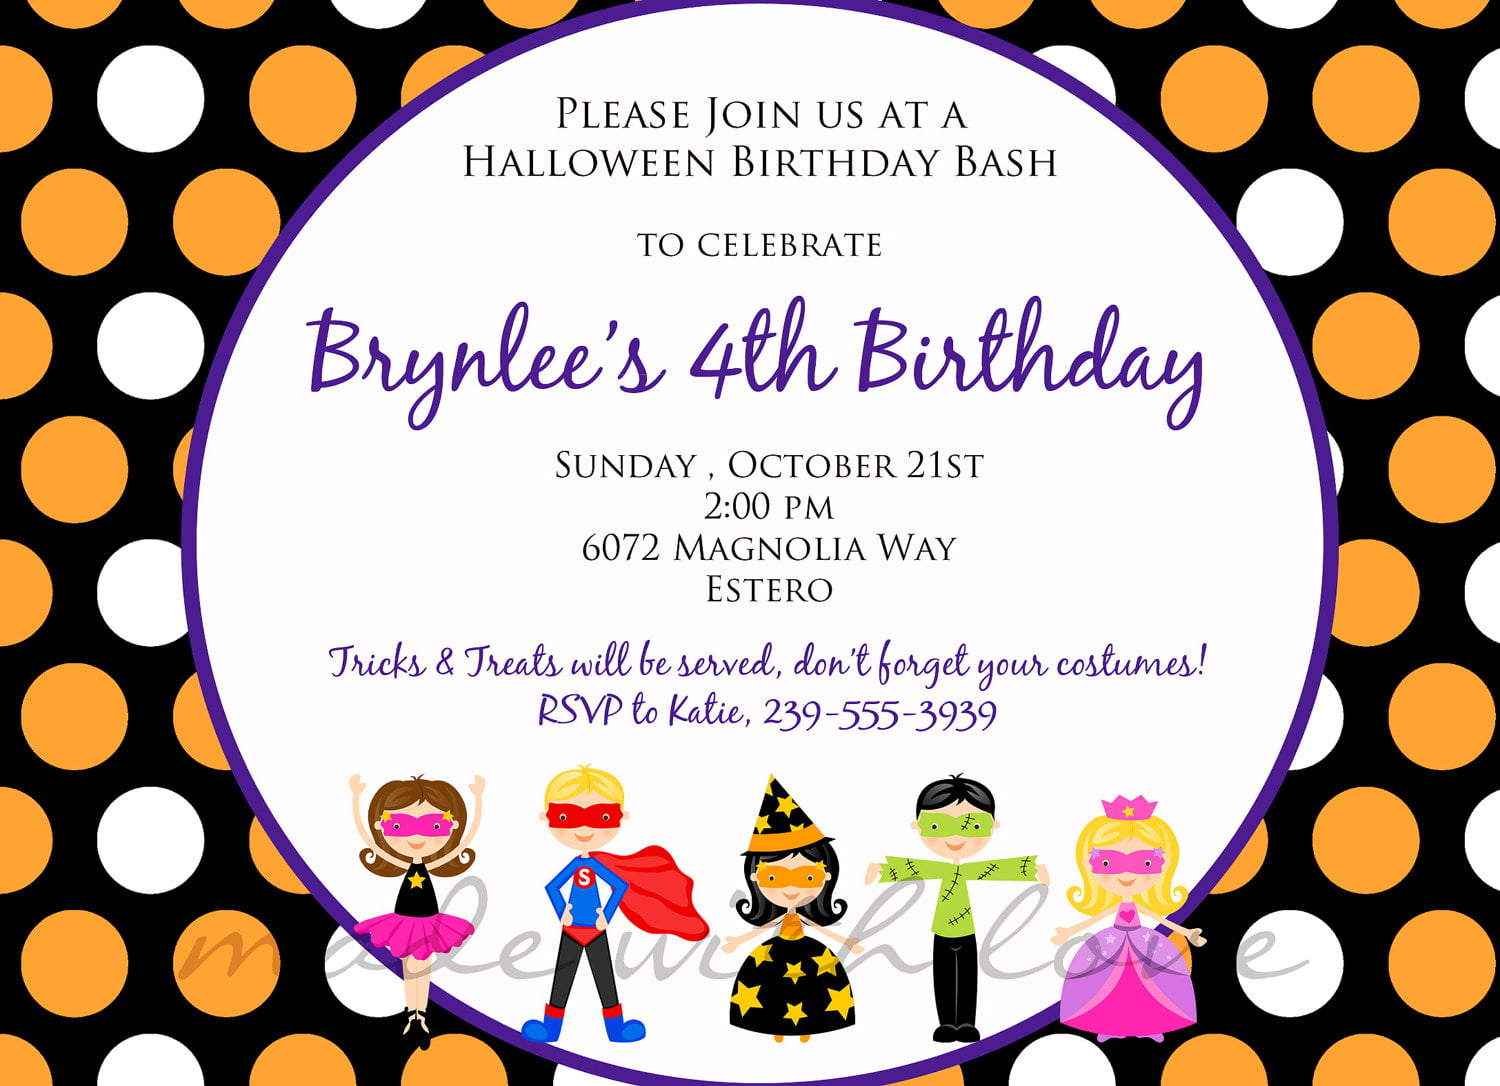 Kids birthday party invitation wording bagvania free printable kids birthday party invitation wording filmwisefo Gallery